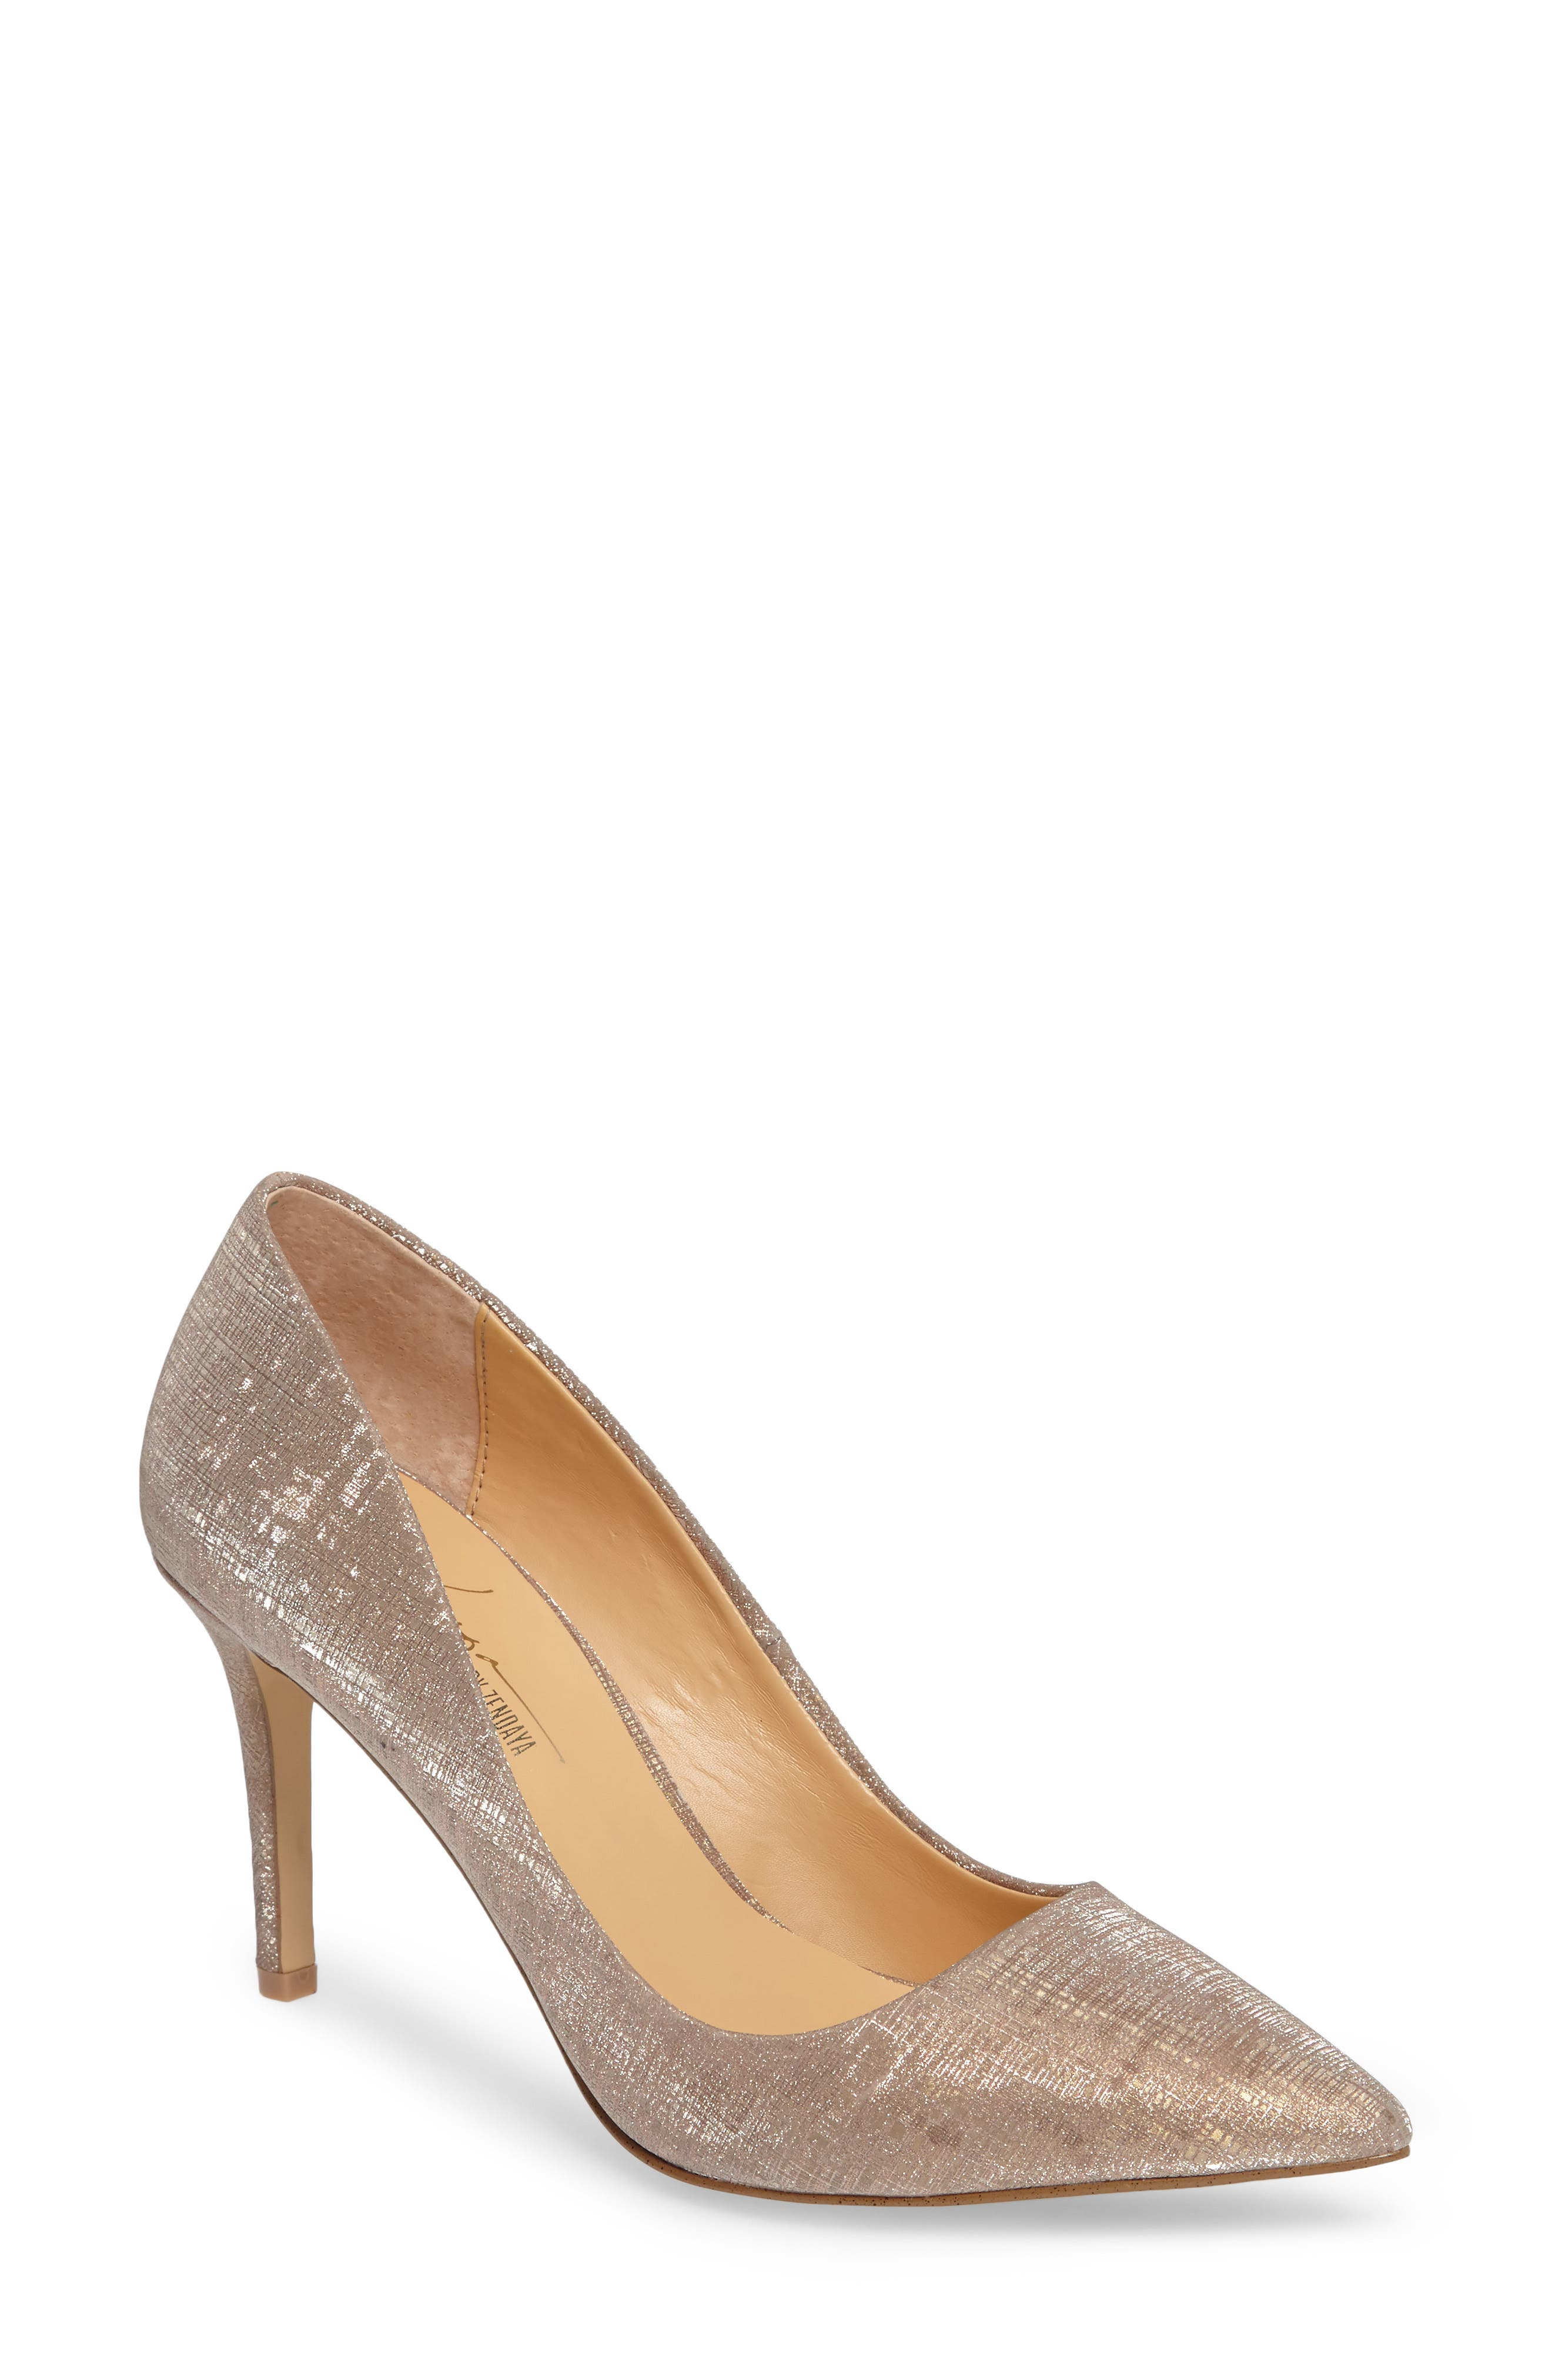 by Zendaya Nycole Metallic Pump,                         Main,                         color, Gold